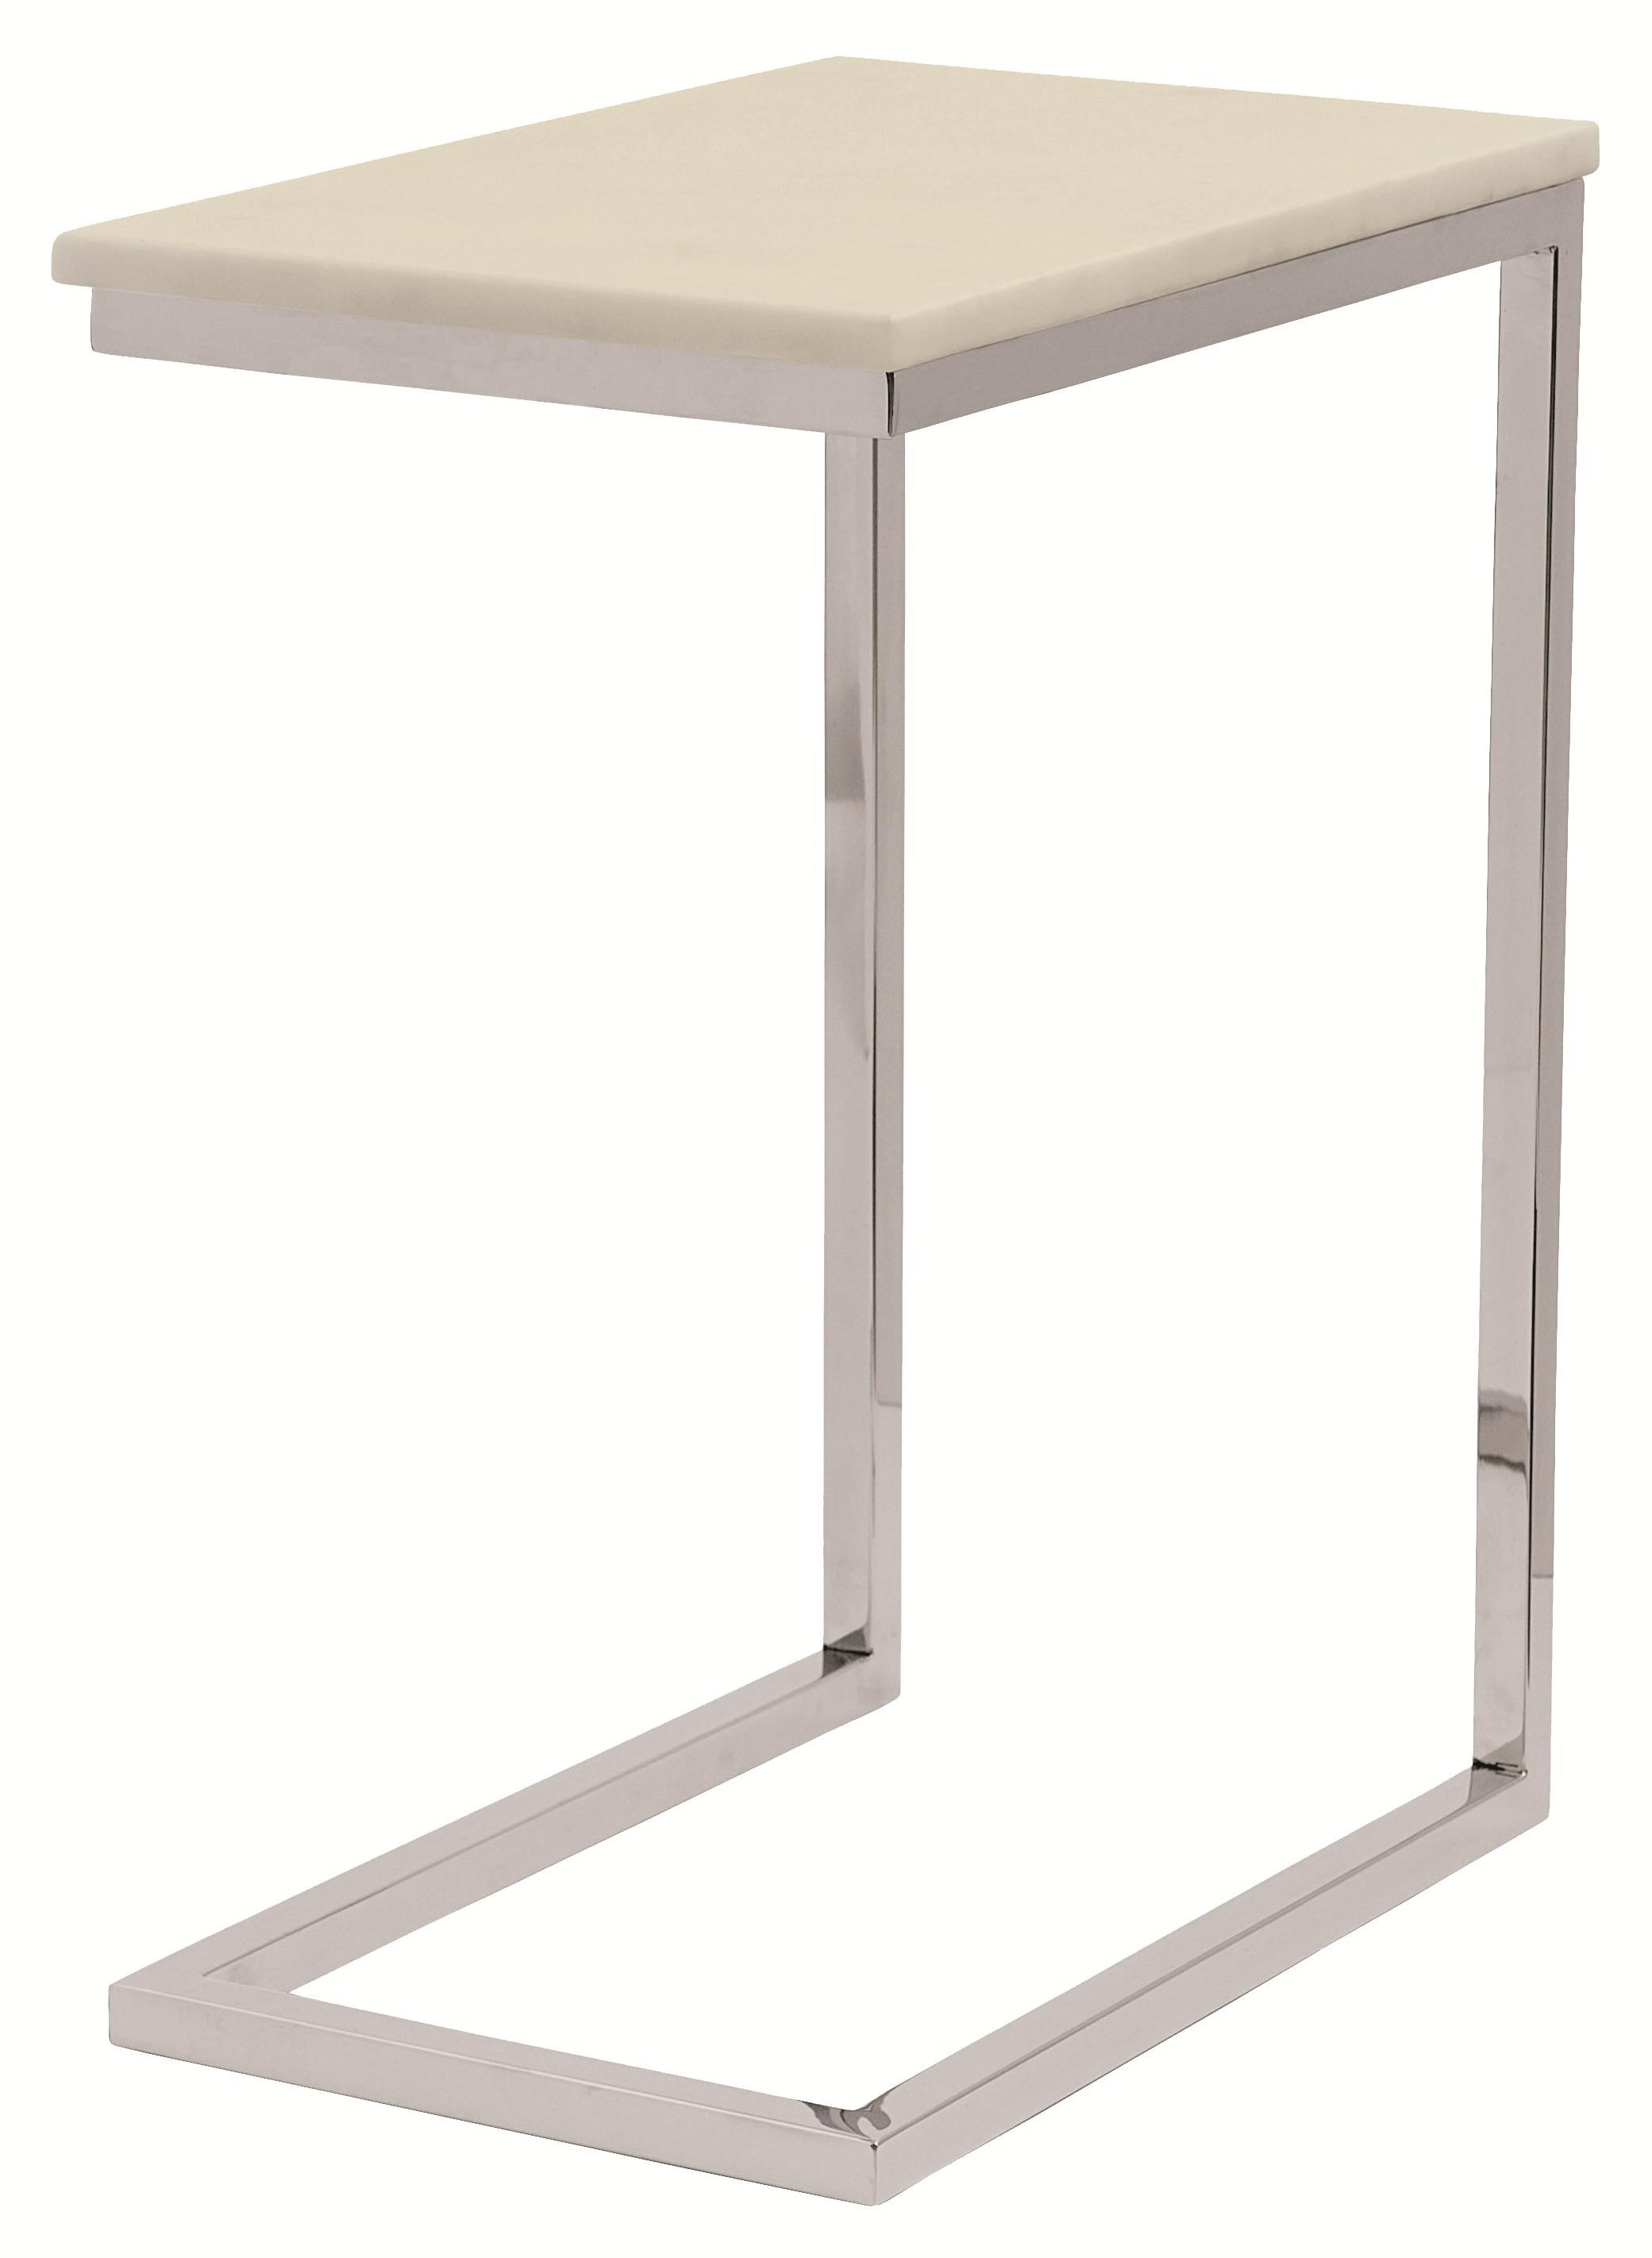 Ivory Marble Pull-Up Table with Stainless Steel Legs